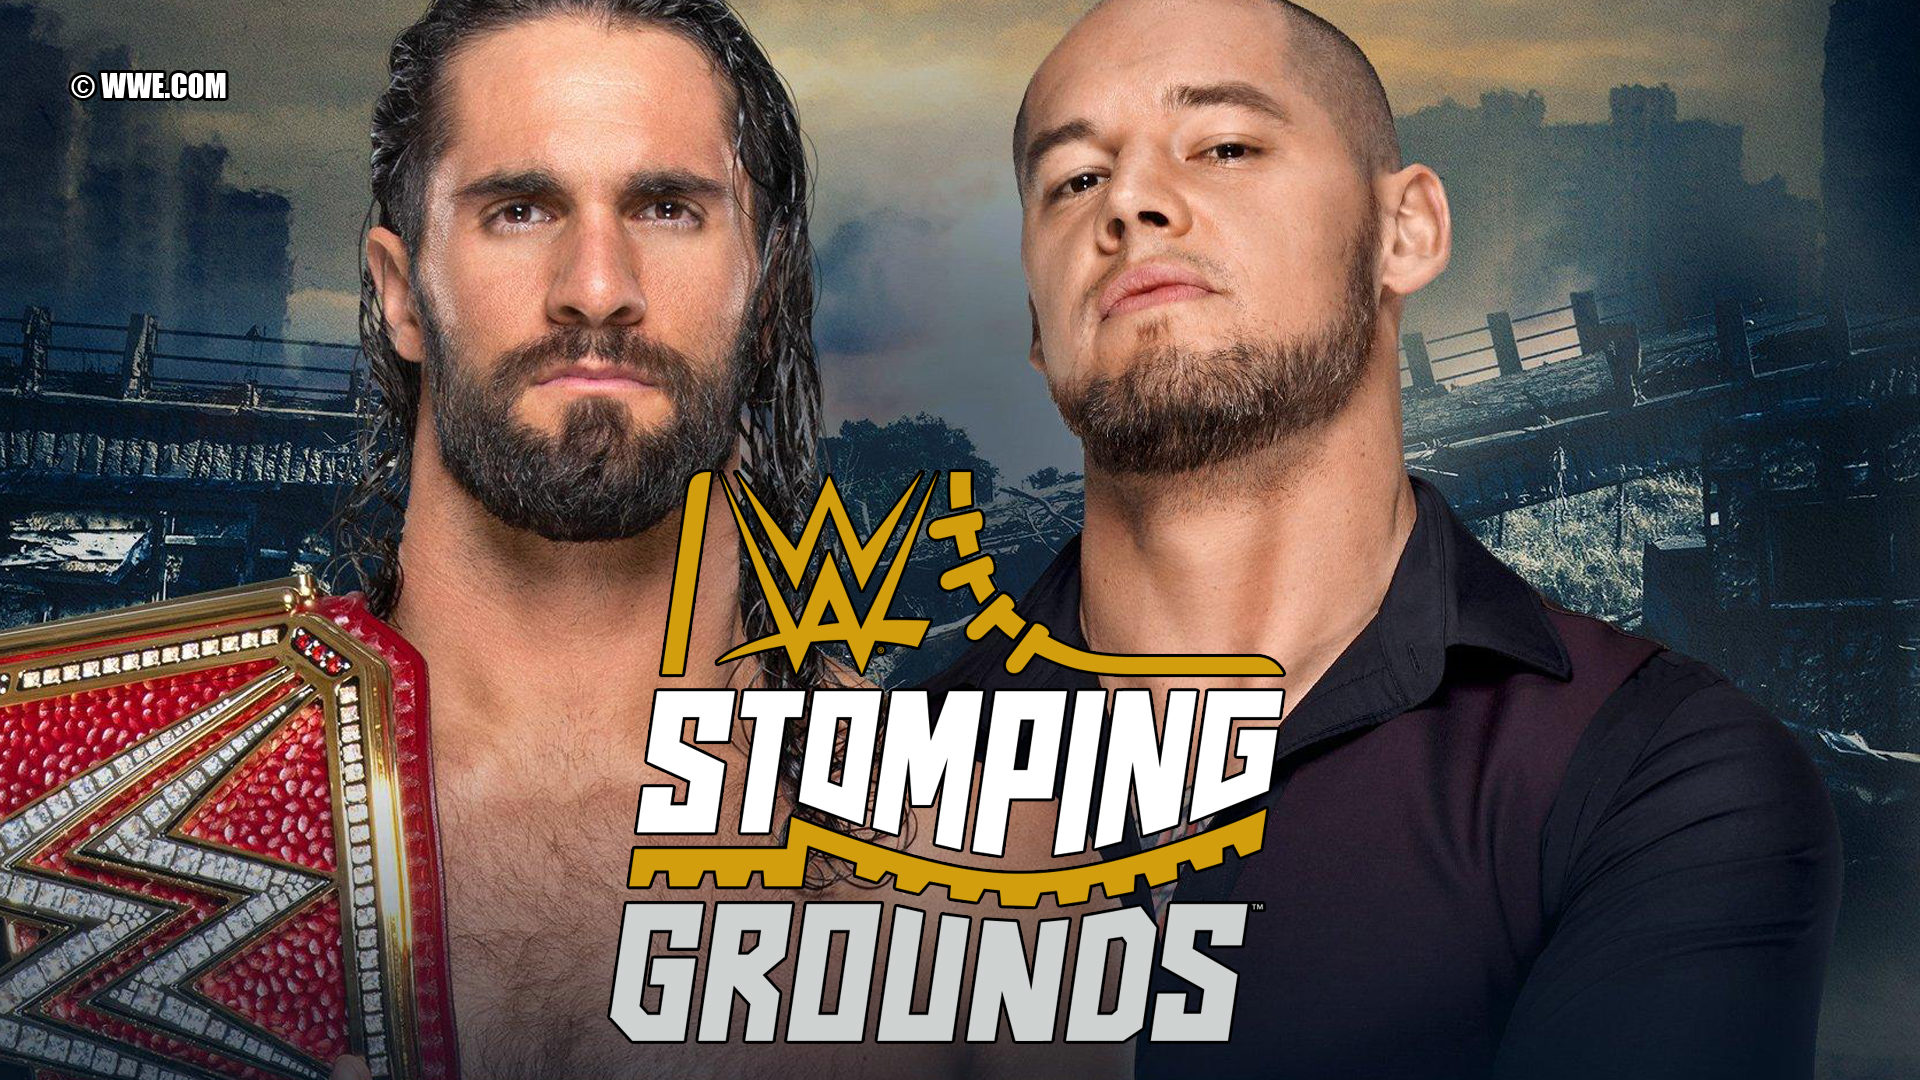 WWE Stomping Grounds Watch Online Live Stream Free